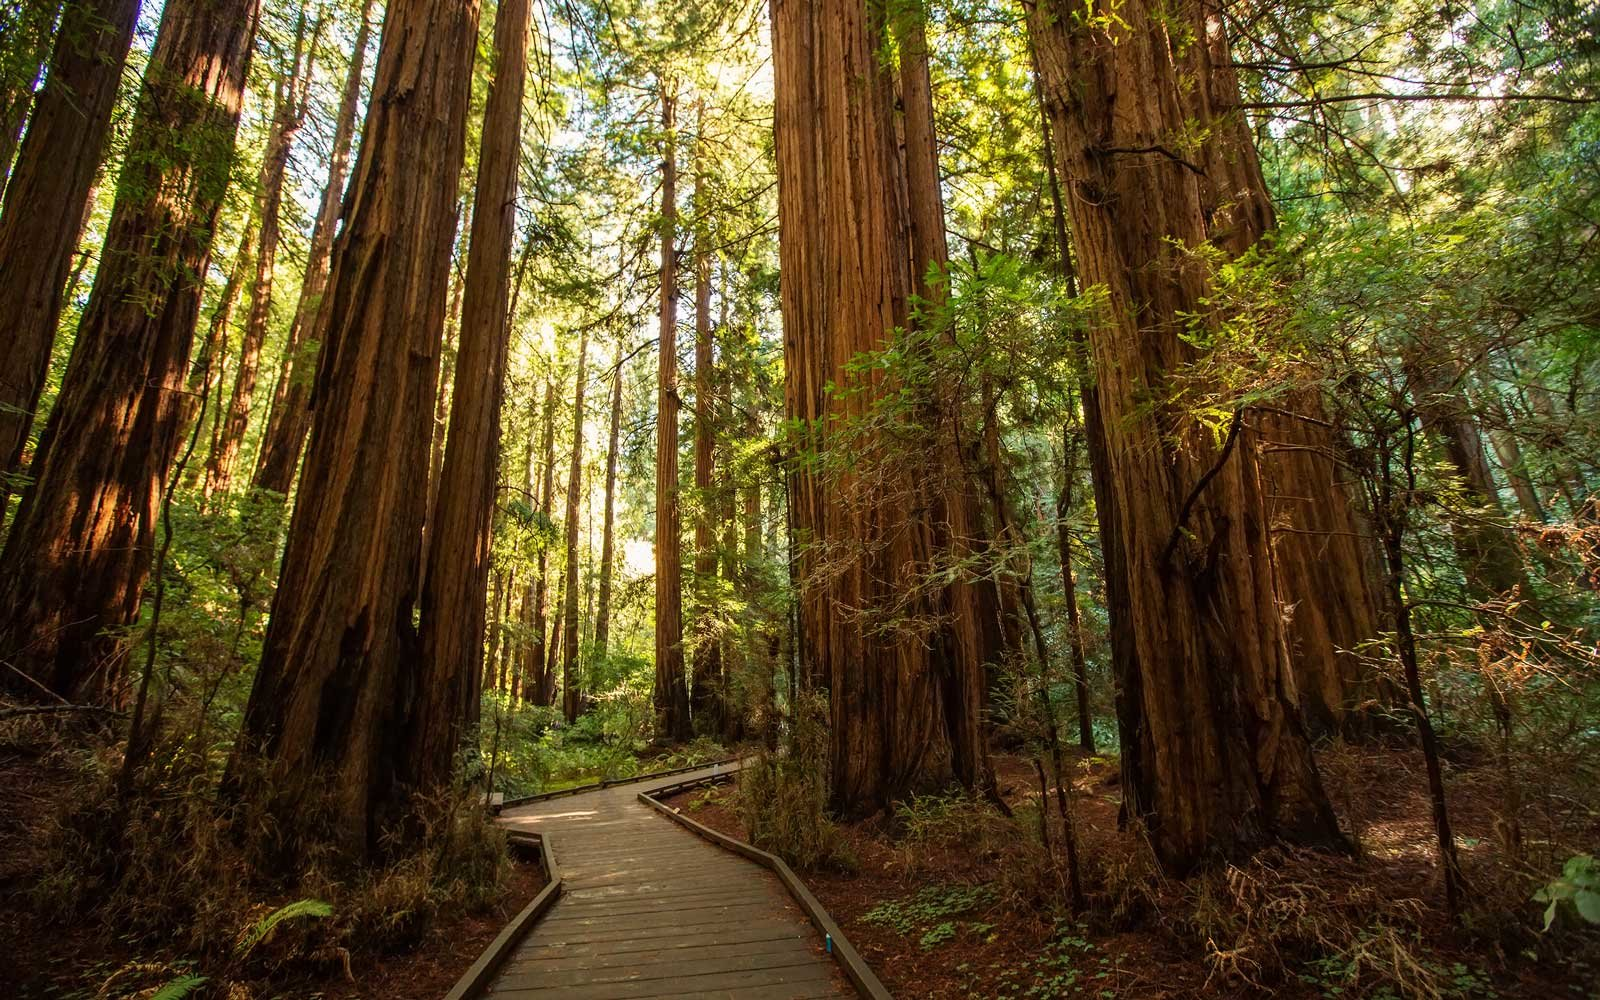 Muir woods National Monument near San Francisco in California, USA